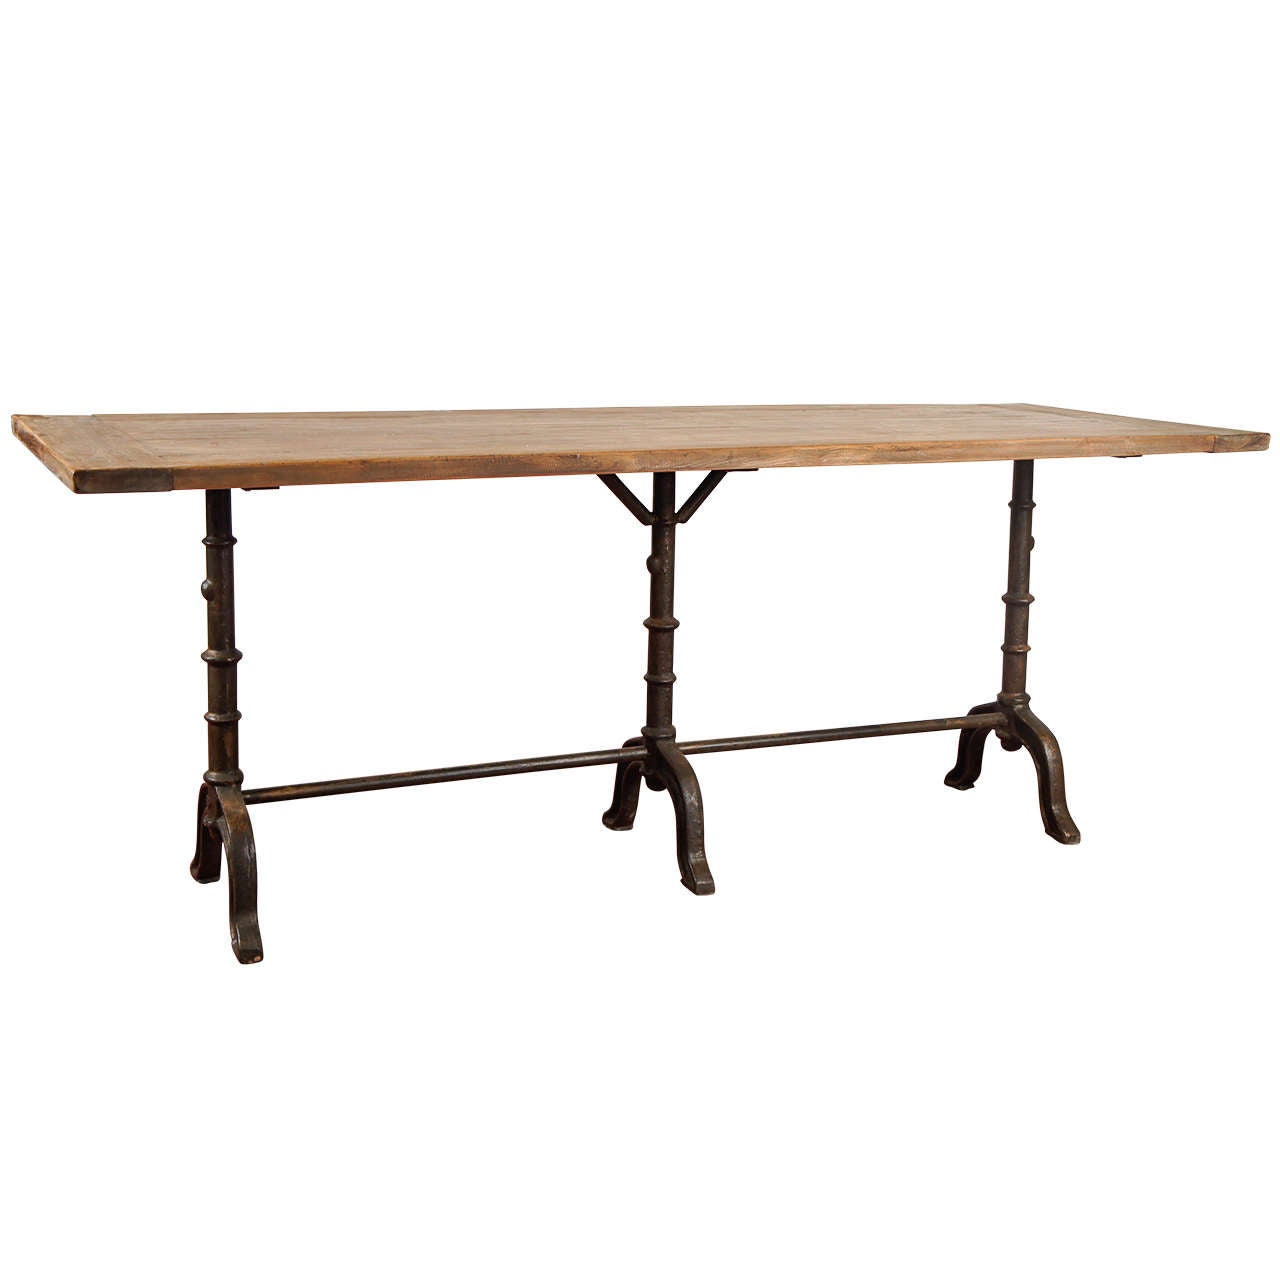 id f bistro kitchen table French Country Bistro Dining Table 1